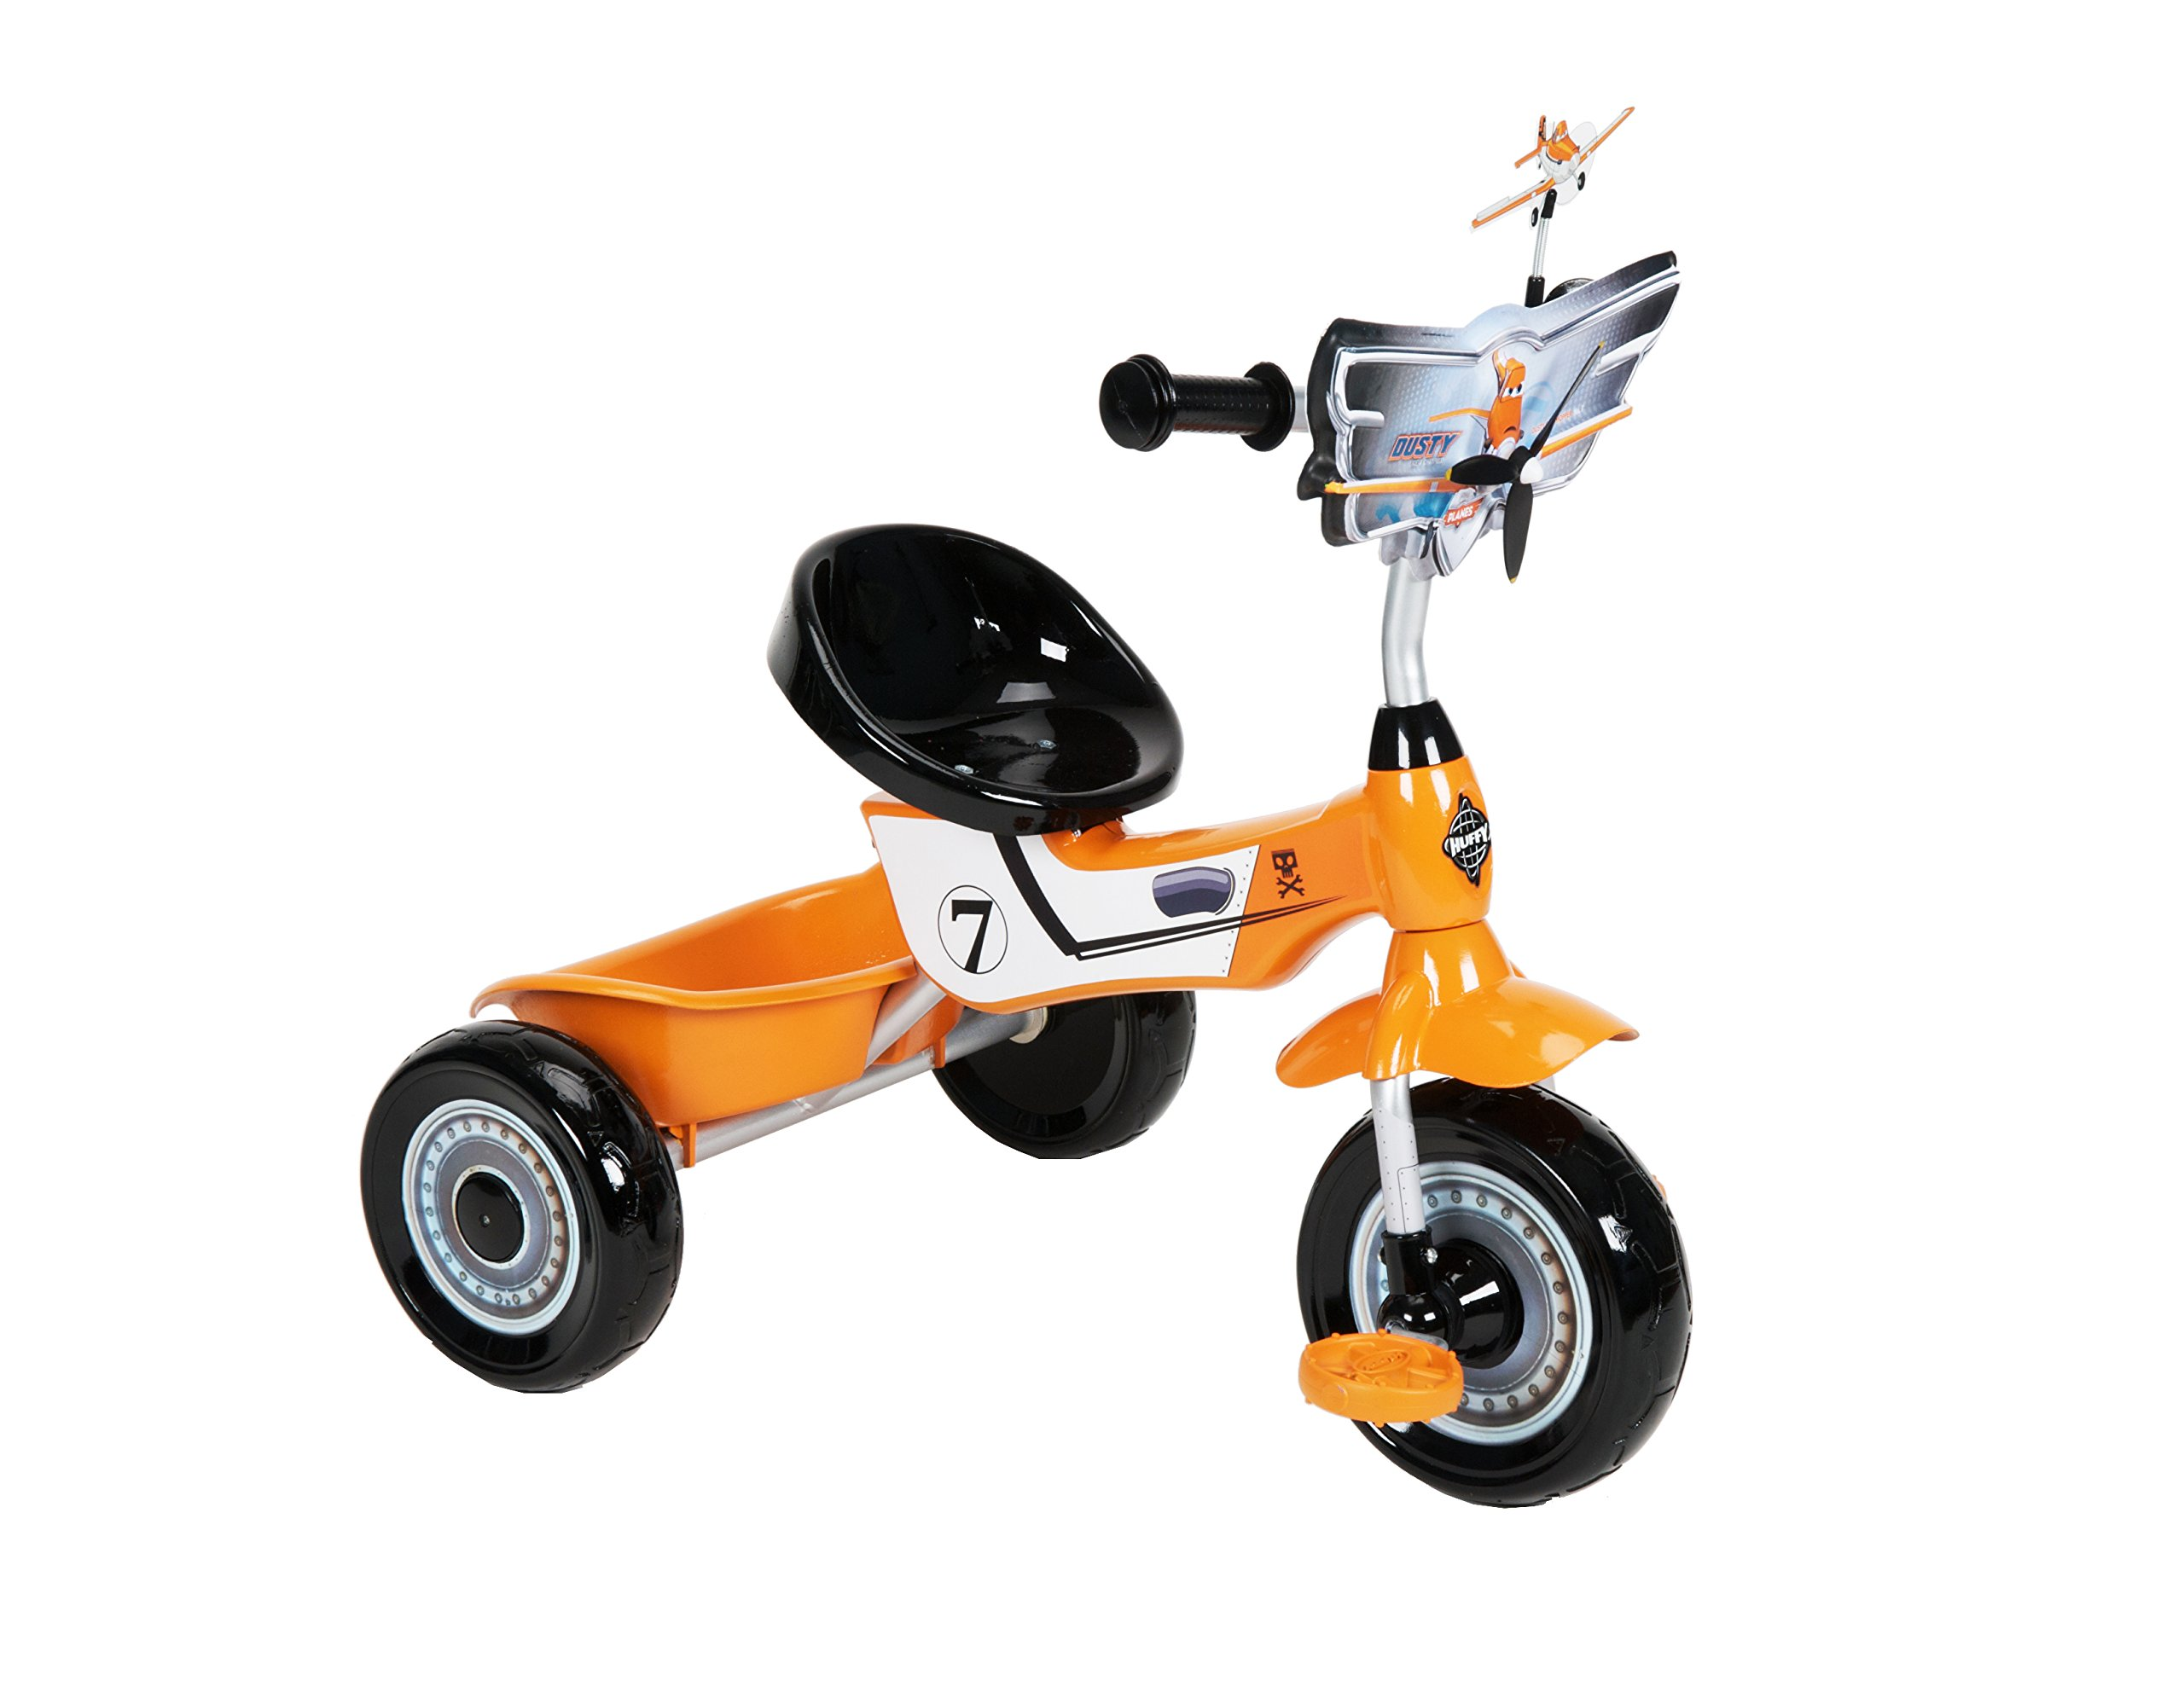 Huffy Disney Planes folding Trike with Propeller Placque